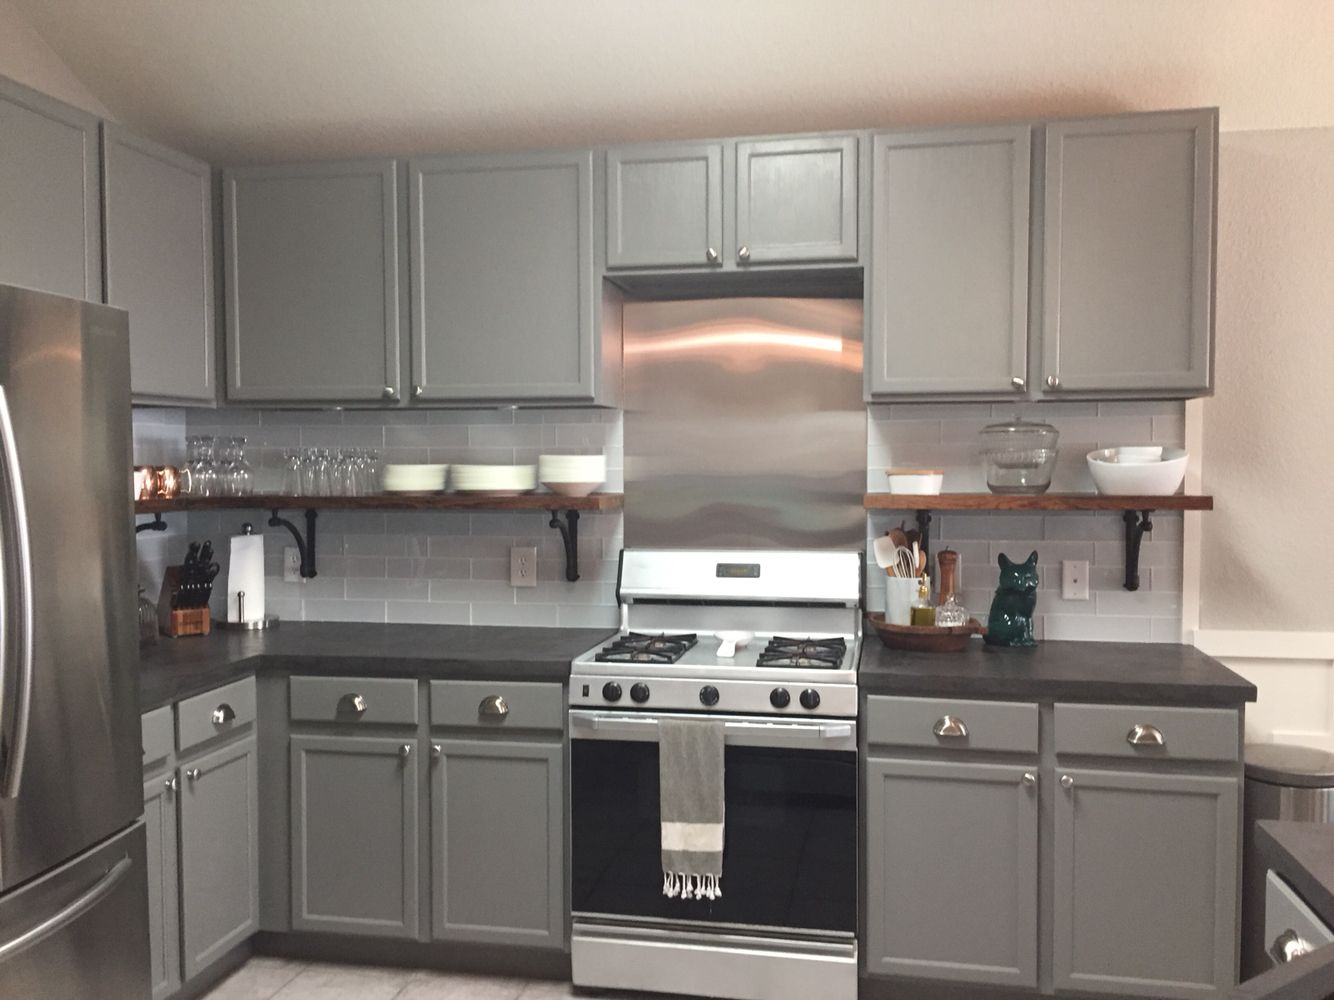 Kitchen design in austin with flat panel cabinets stainless steel - My Updated Kitchen As Of May 2015 With Ardex Feather Finish Concrete Countertops White 3x12 Glass Subway Tiles From Lowes Stainless Steel Backsplash